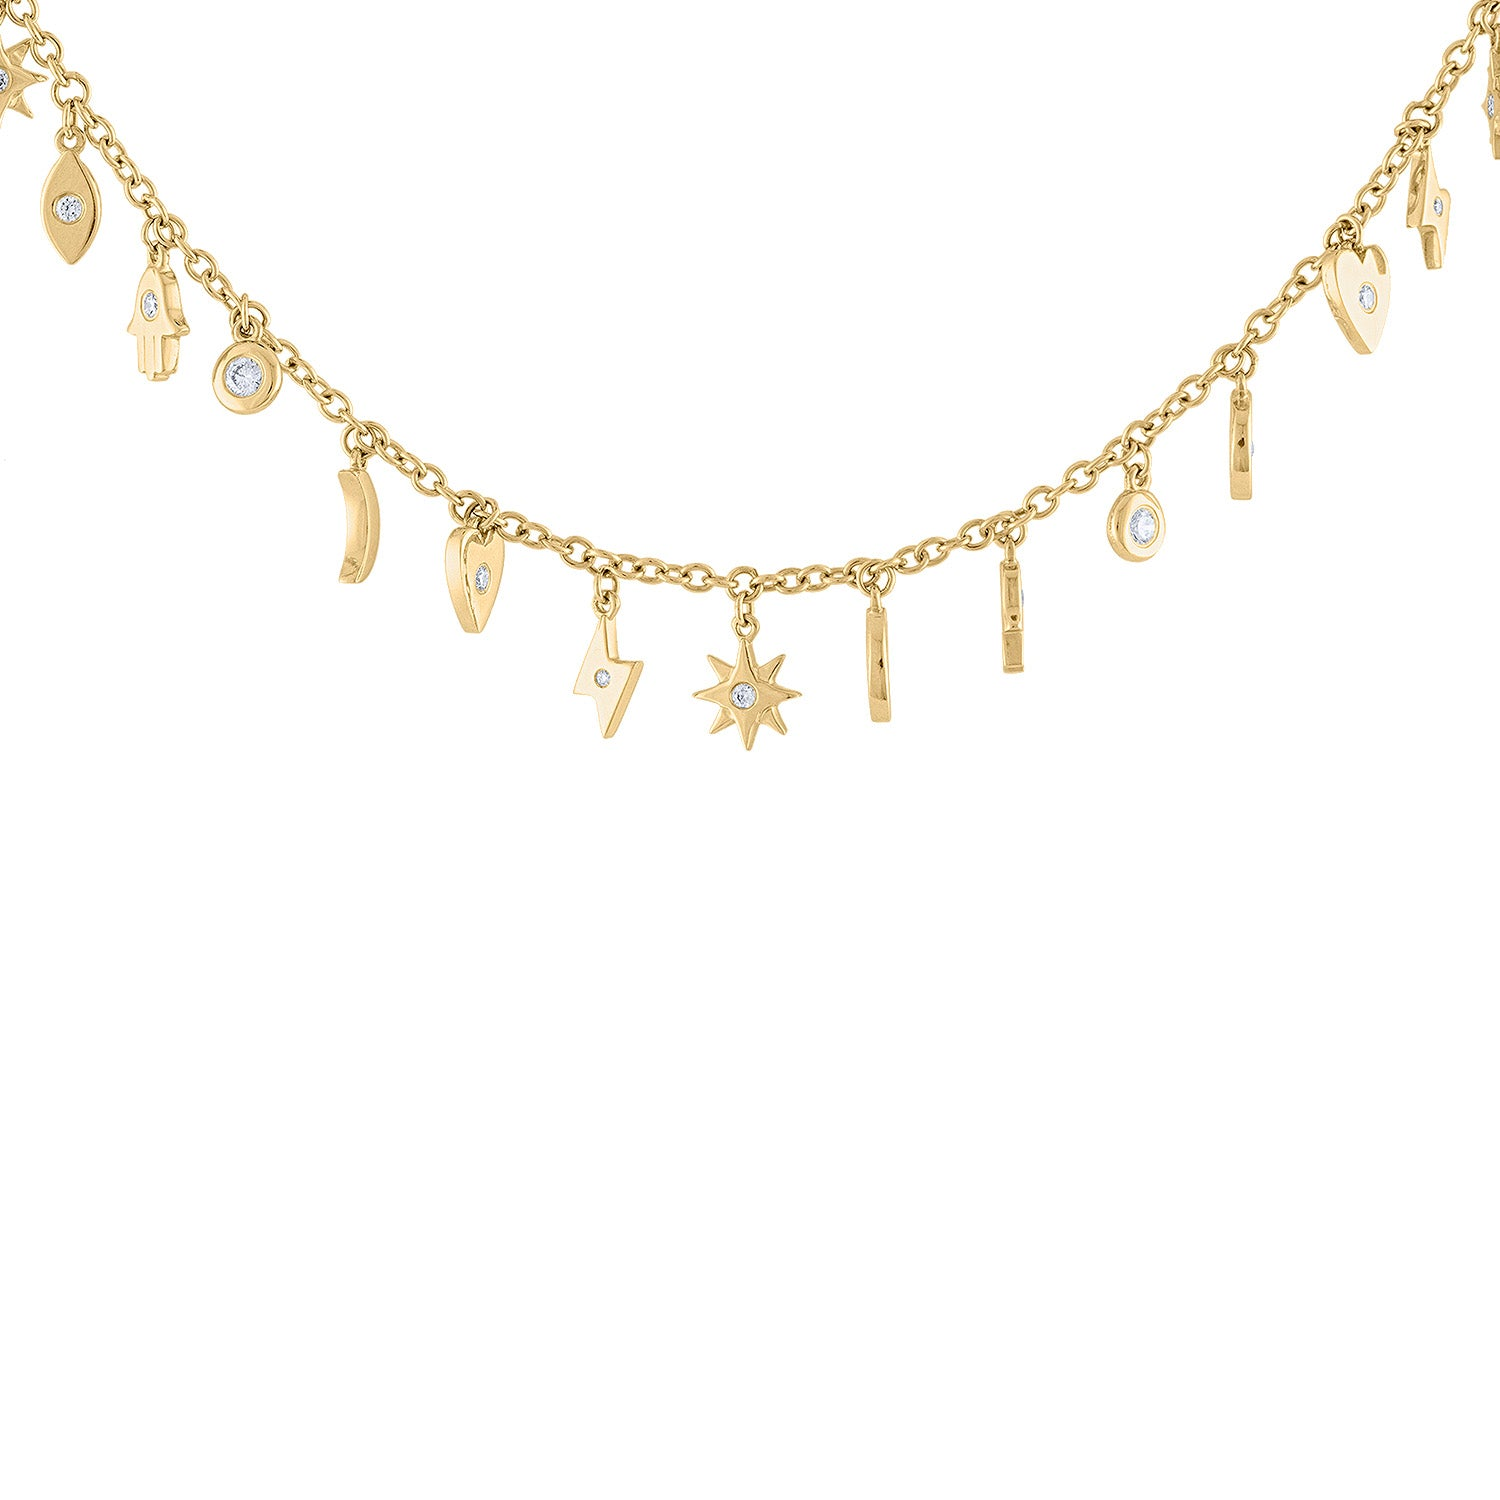 14KT GOLD DIAMOND MULTI CHARM DANGLE NECKLACE